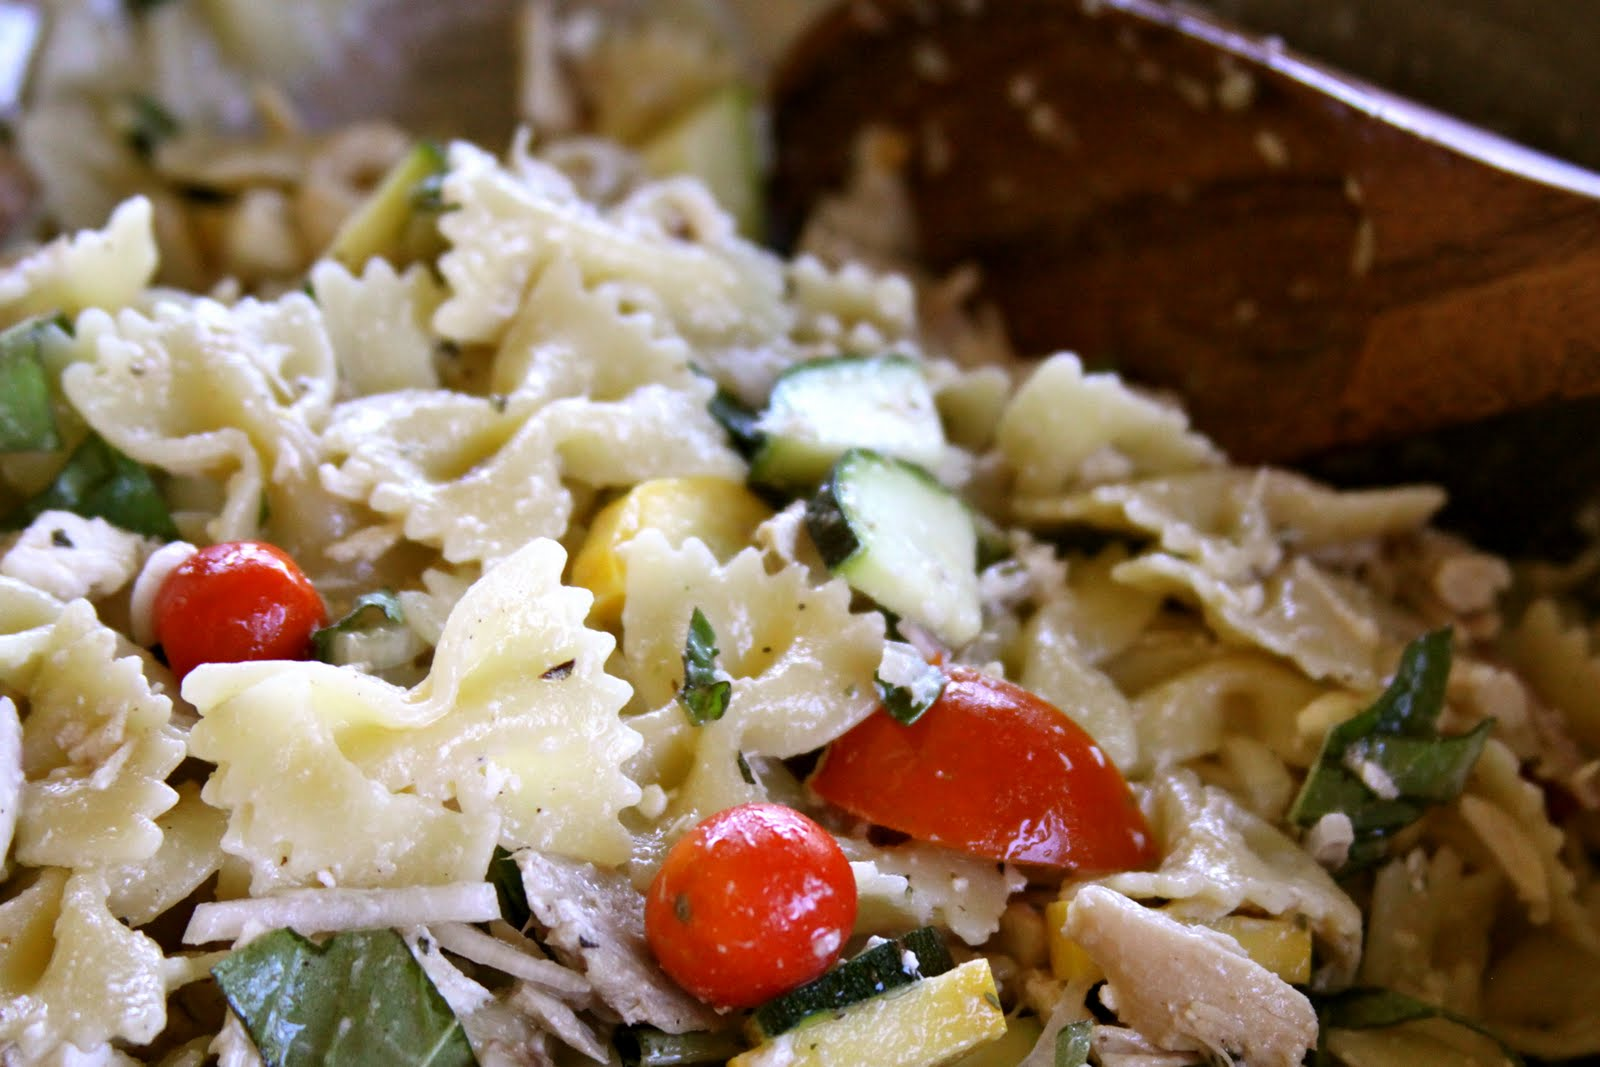 Homestead Revival: Summer Garden Pasta Salad